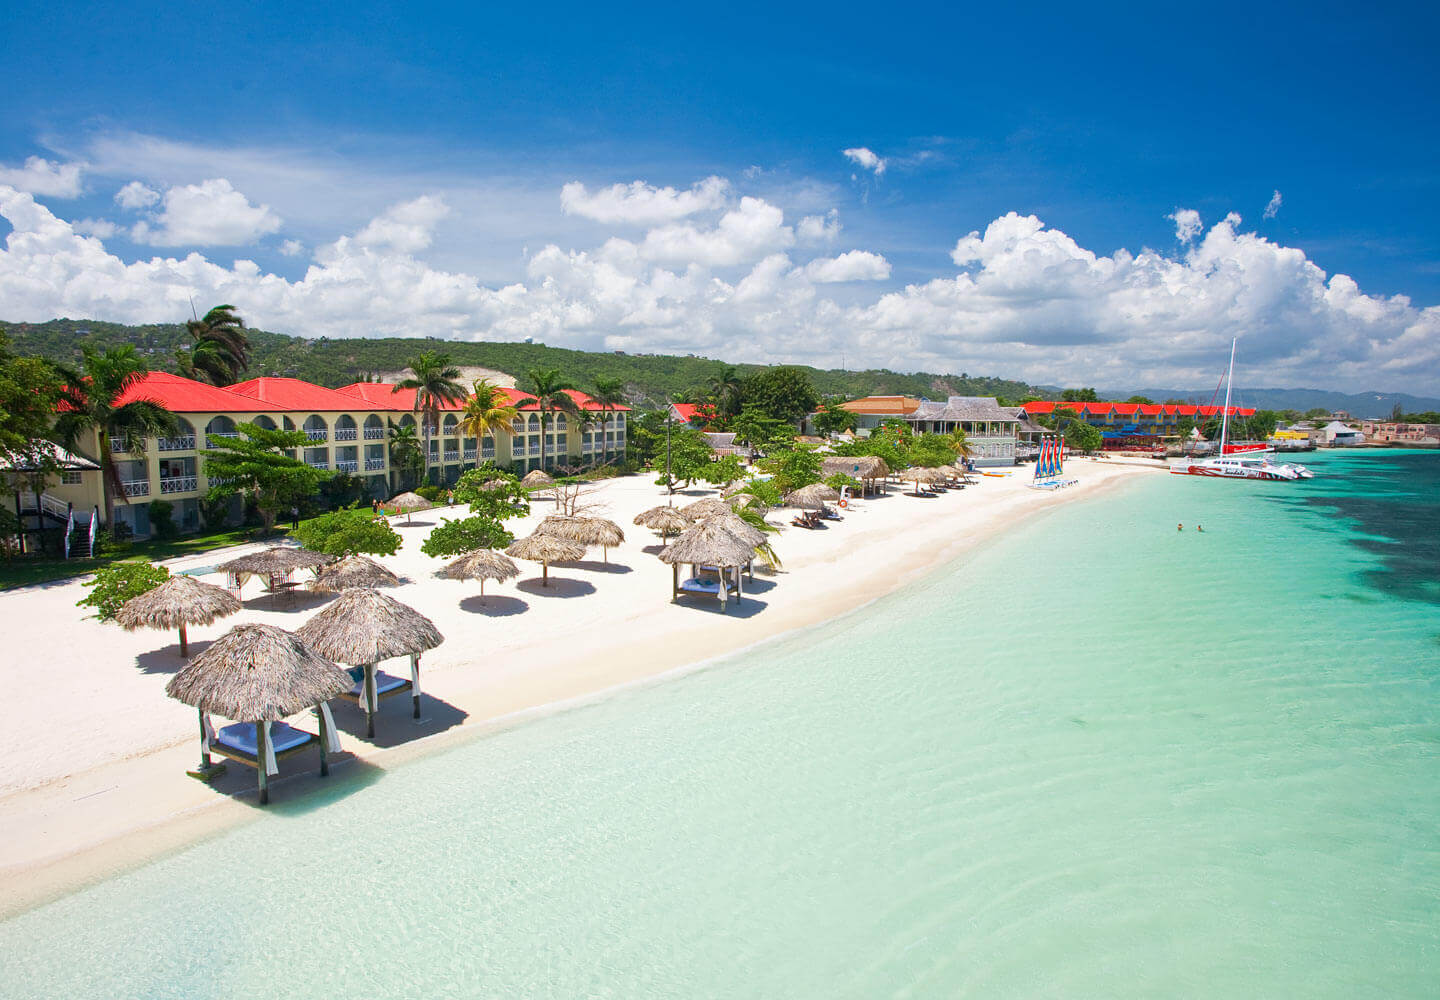 Sandals Montego Bay - All Inclusive Vacations